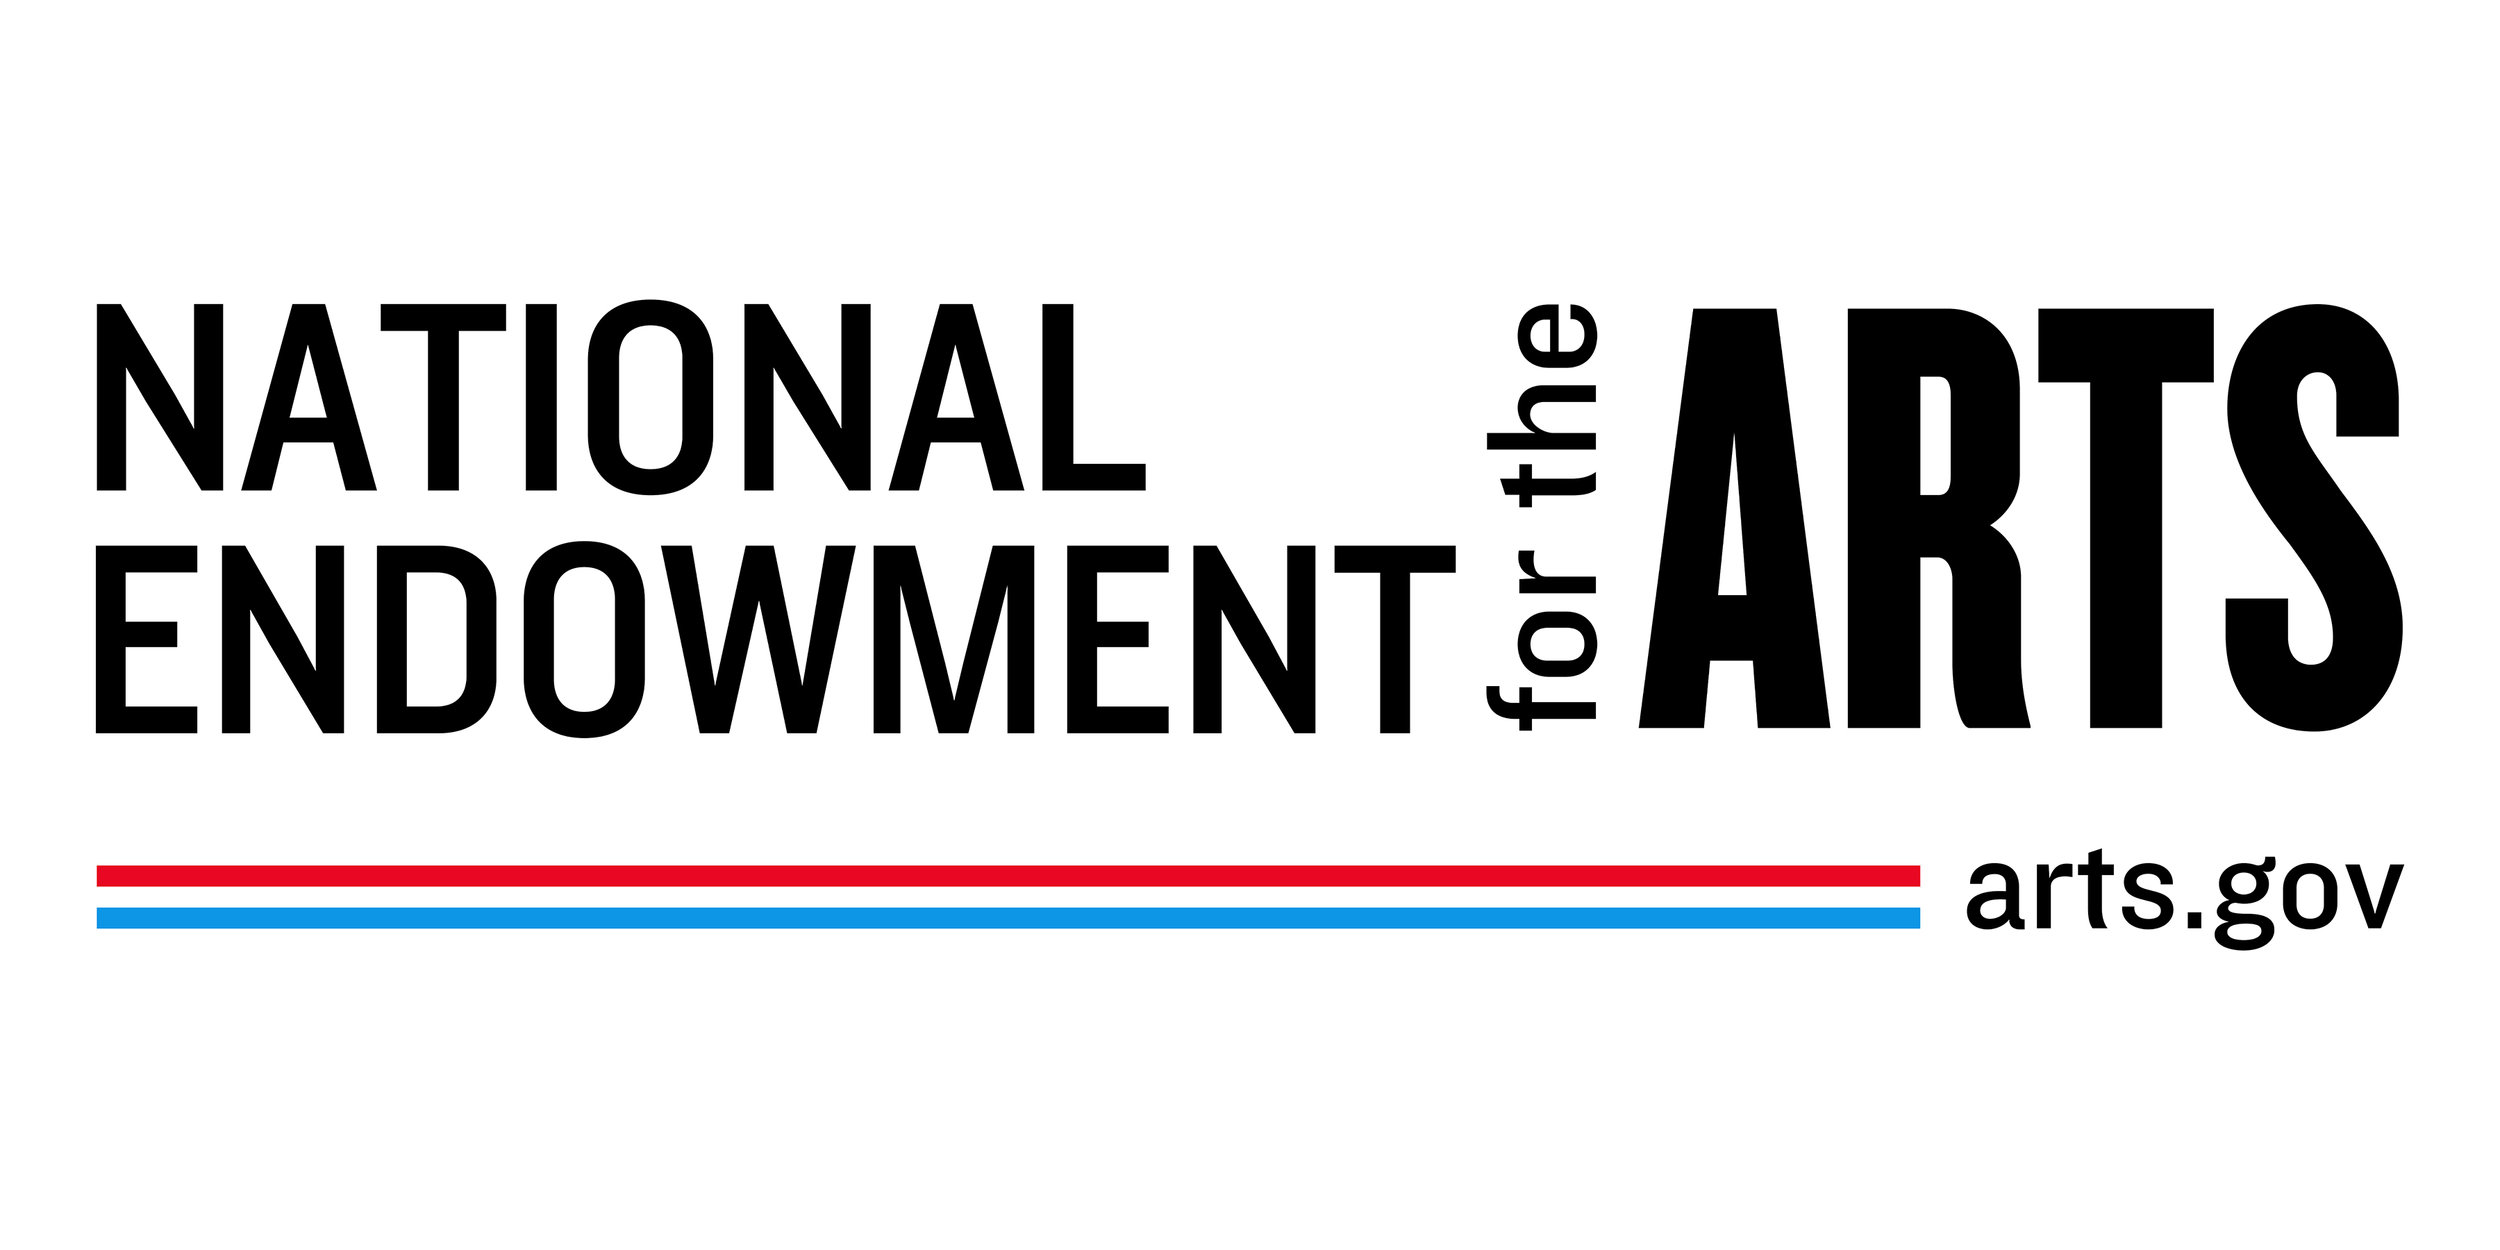 This project is supported in part by the National Endowment for the Arts. To learn more about how NEA grants affect communities, visit  www.arts.gov .